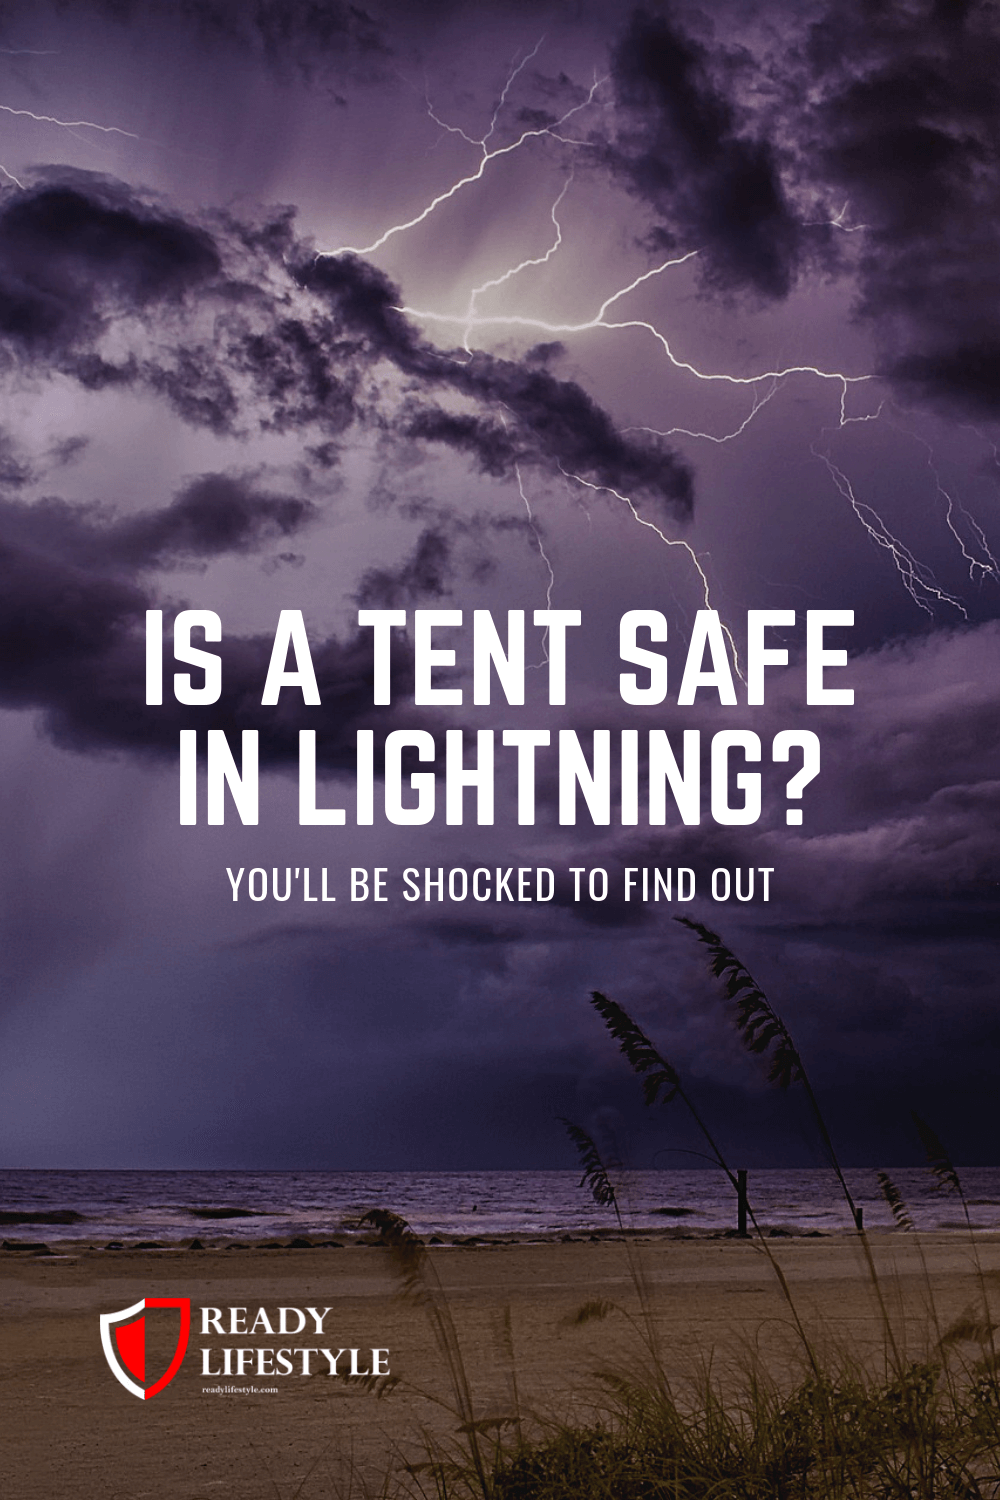 Is a Tent Safe in Lightning?